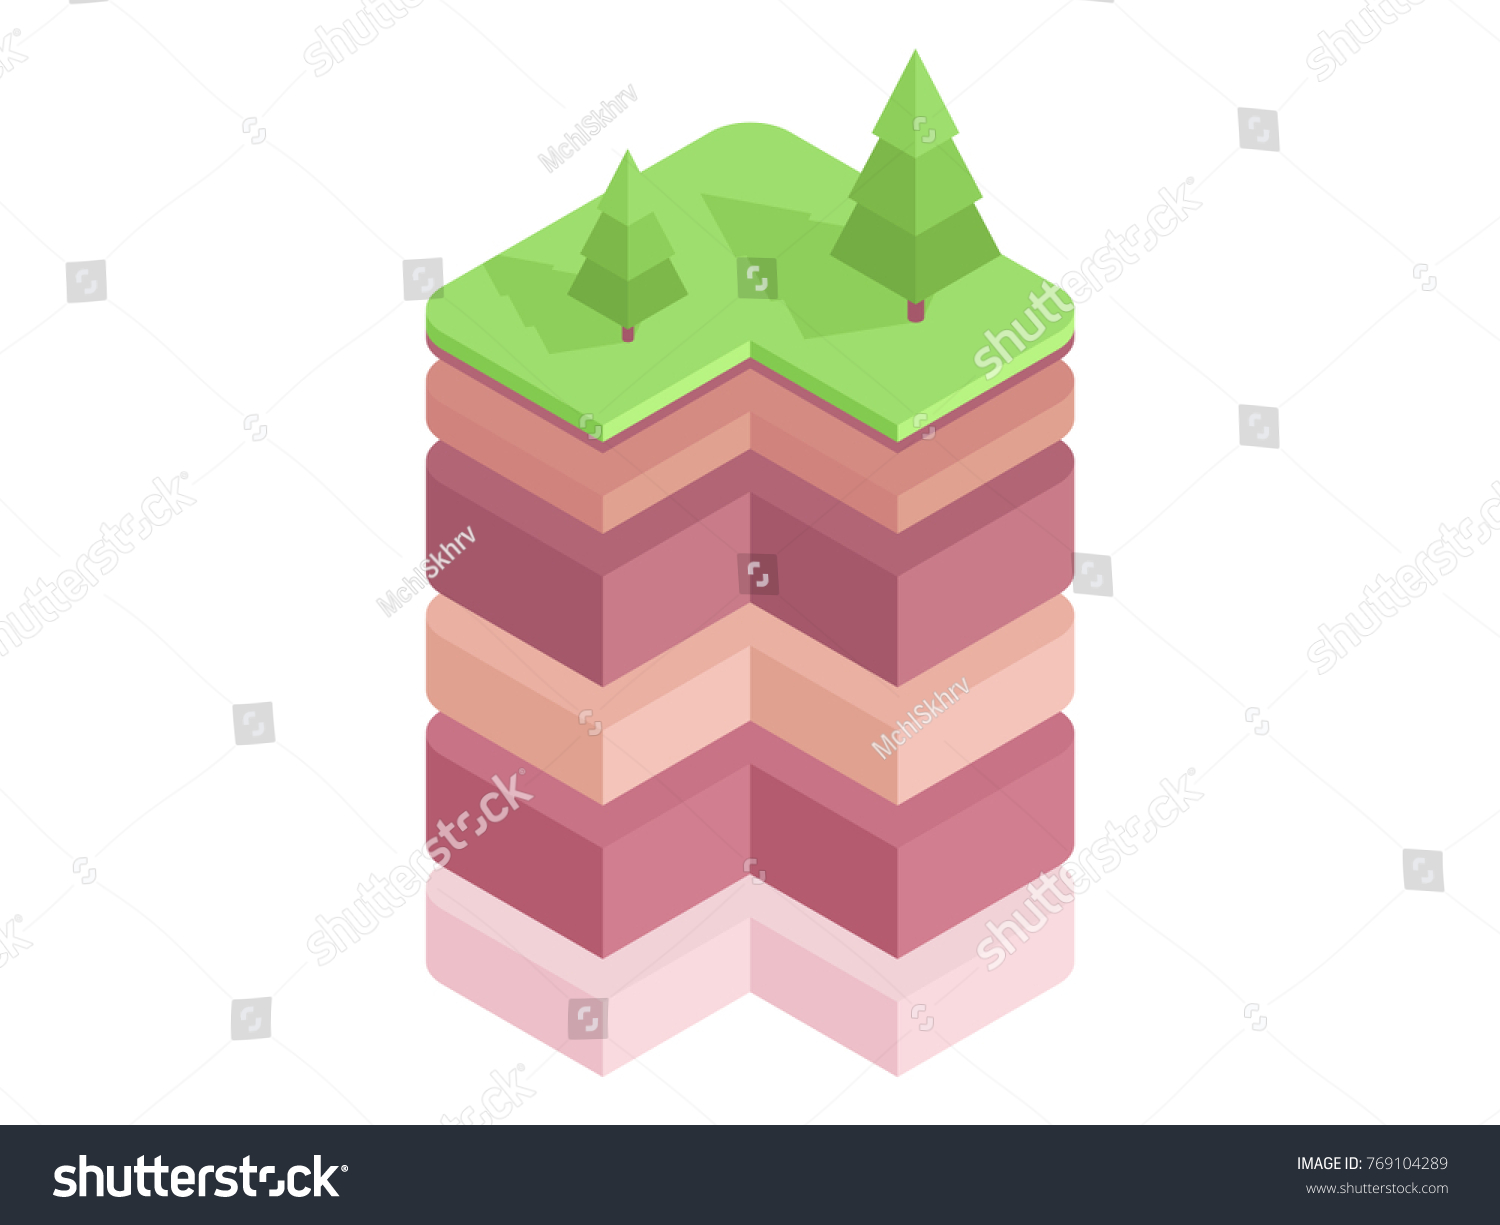 Soil layers diagram isometric soil horizons stock vector 769104289 soil layers diagram isometric soil horizons and profile earth structure vector illustration pooptronica Images